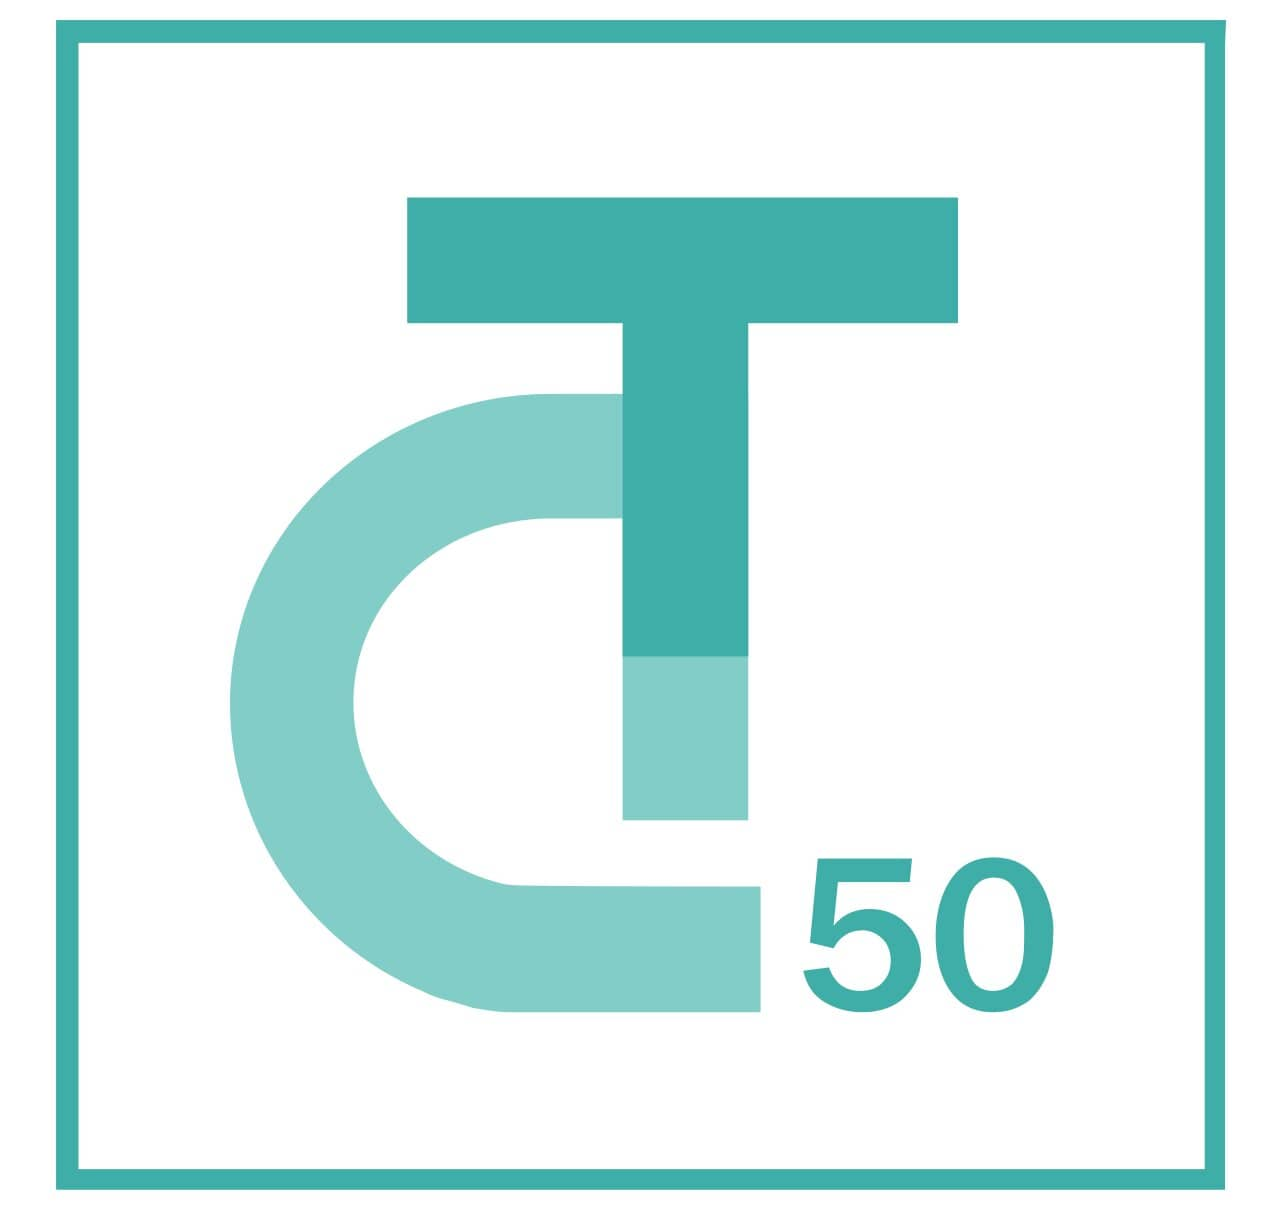 Digital Tech 50 Awards's logo